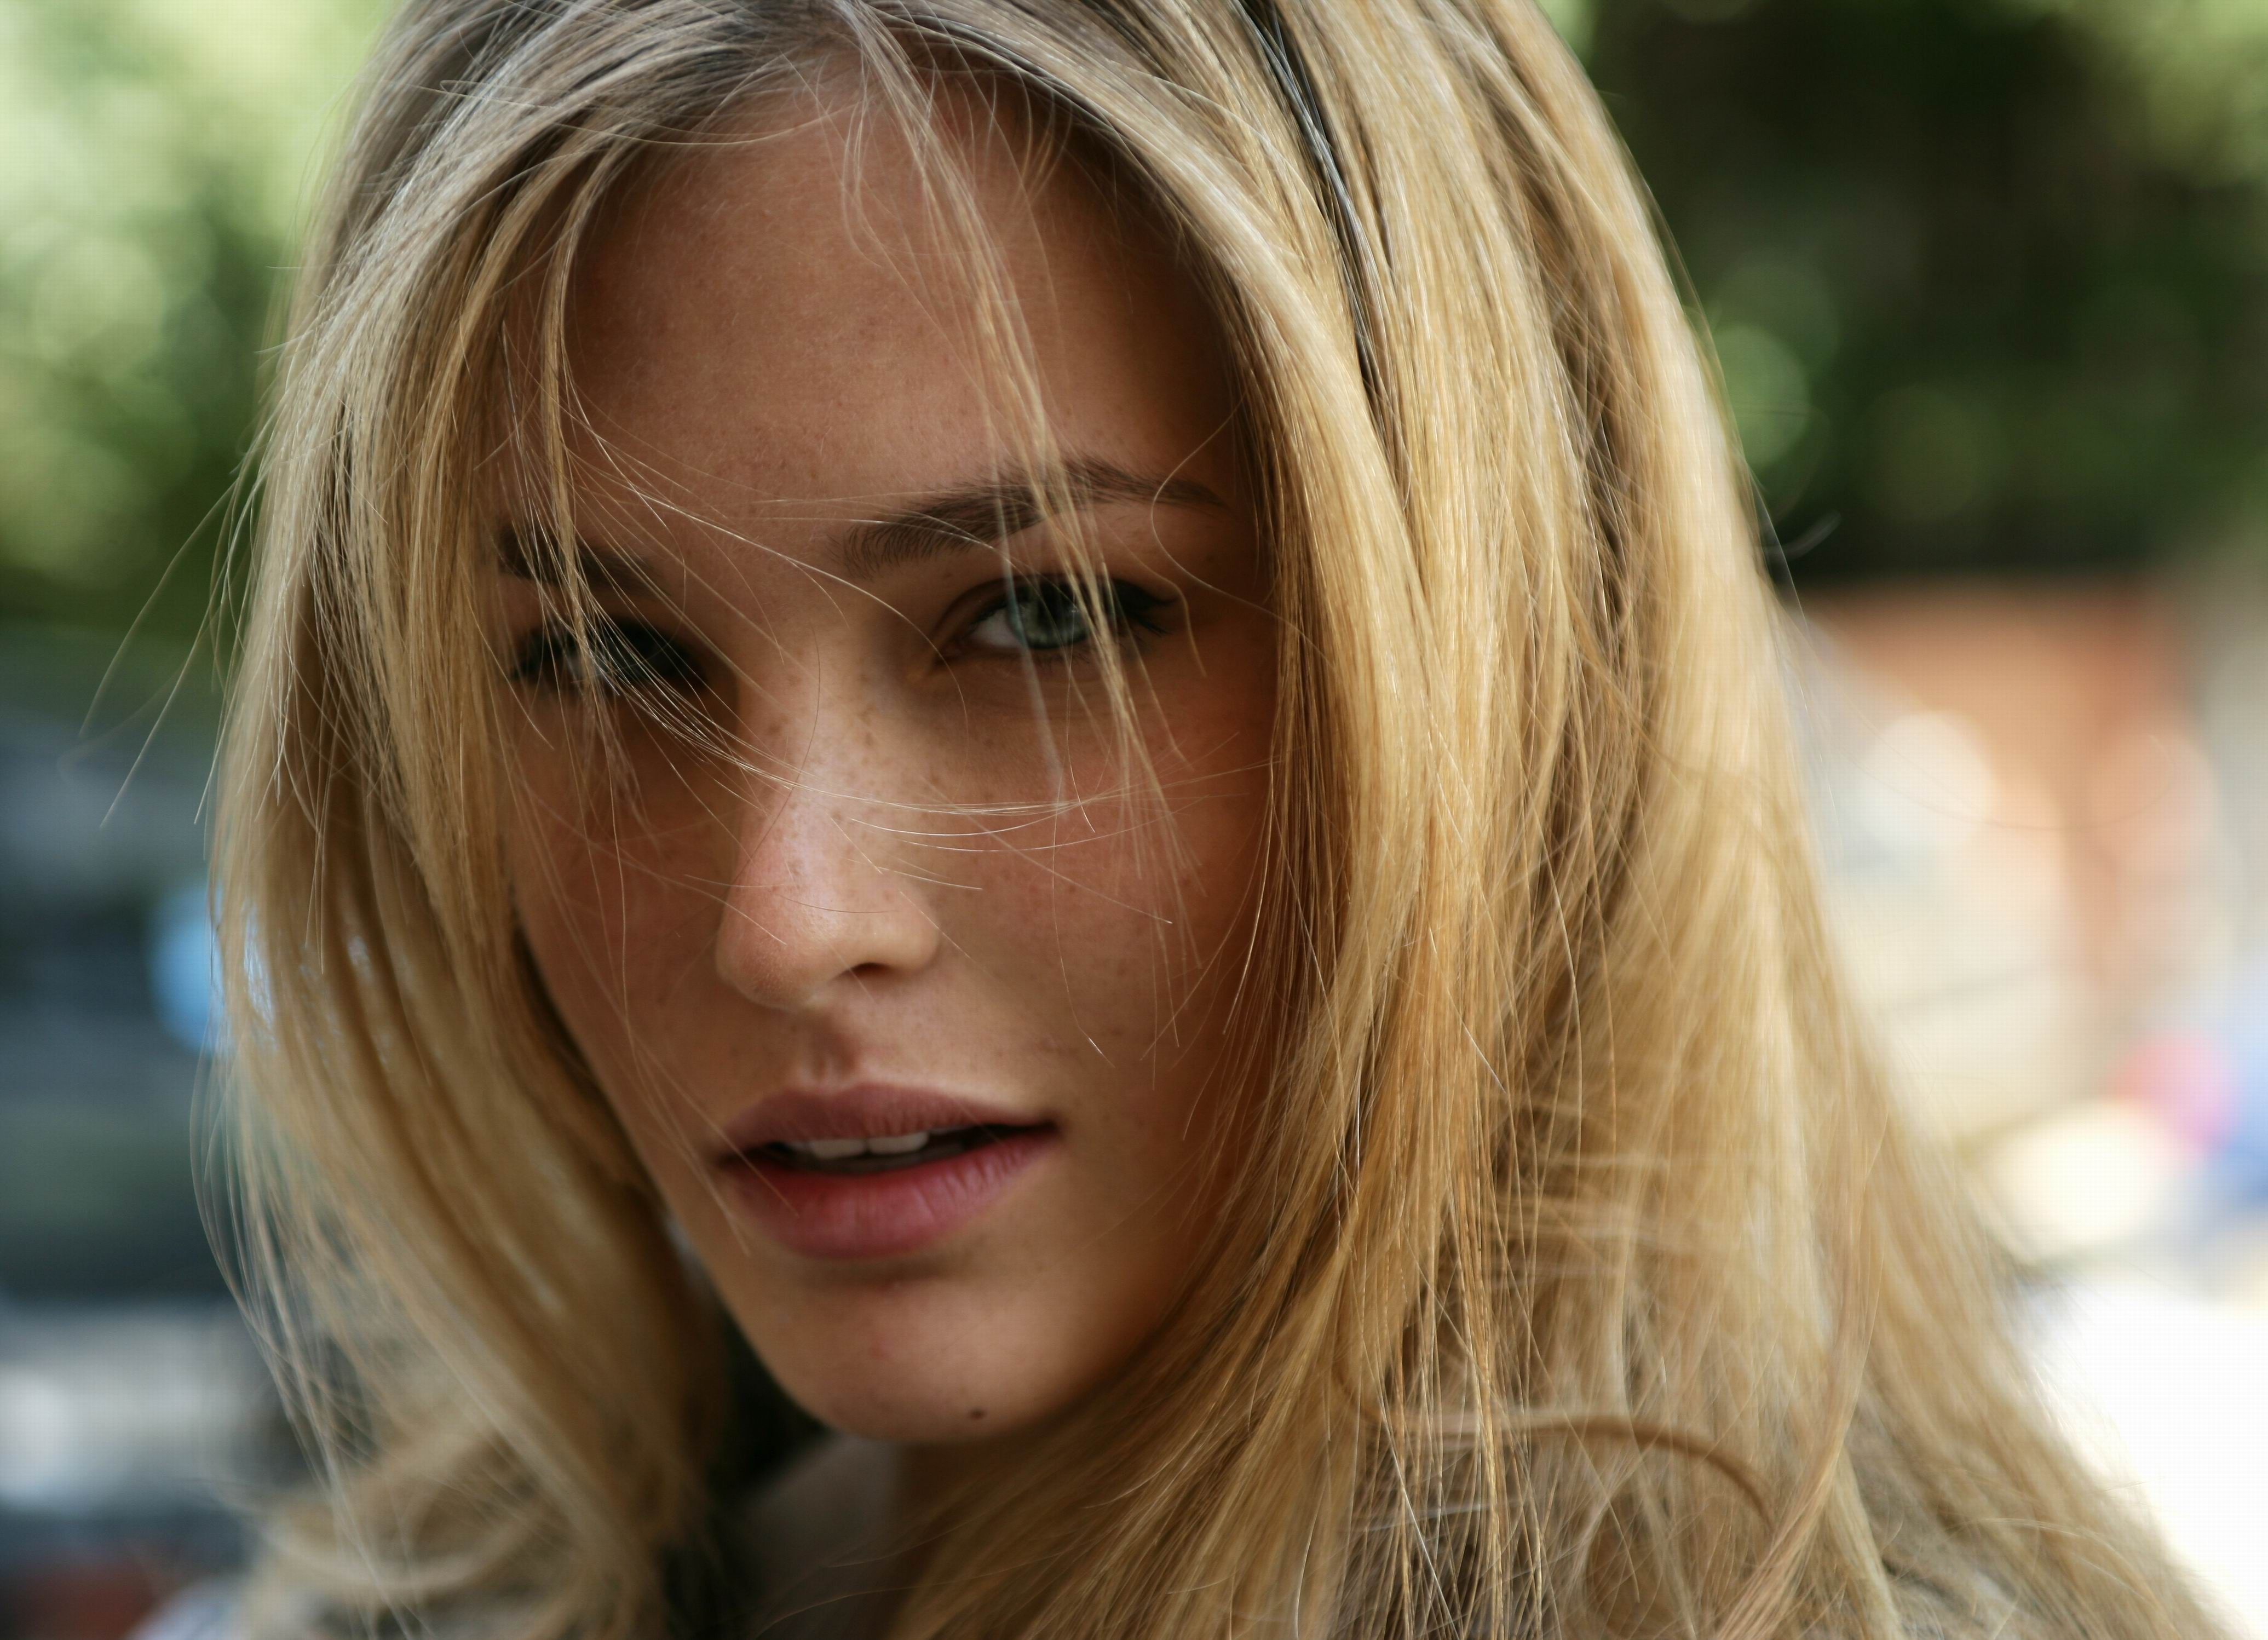 Bar Refaeli Wallpaper For Laptop